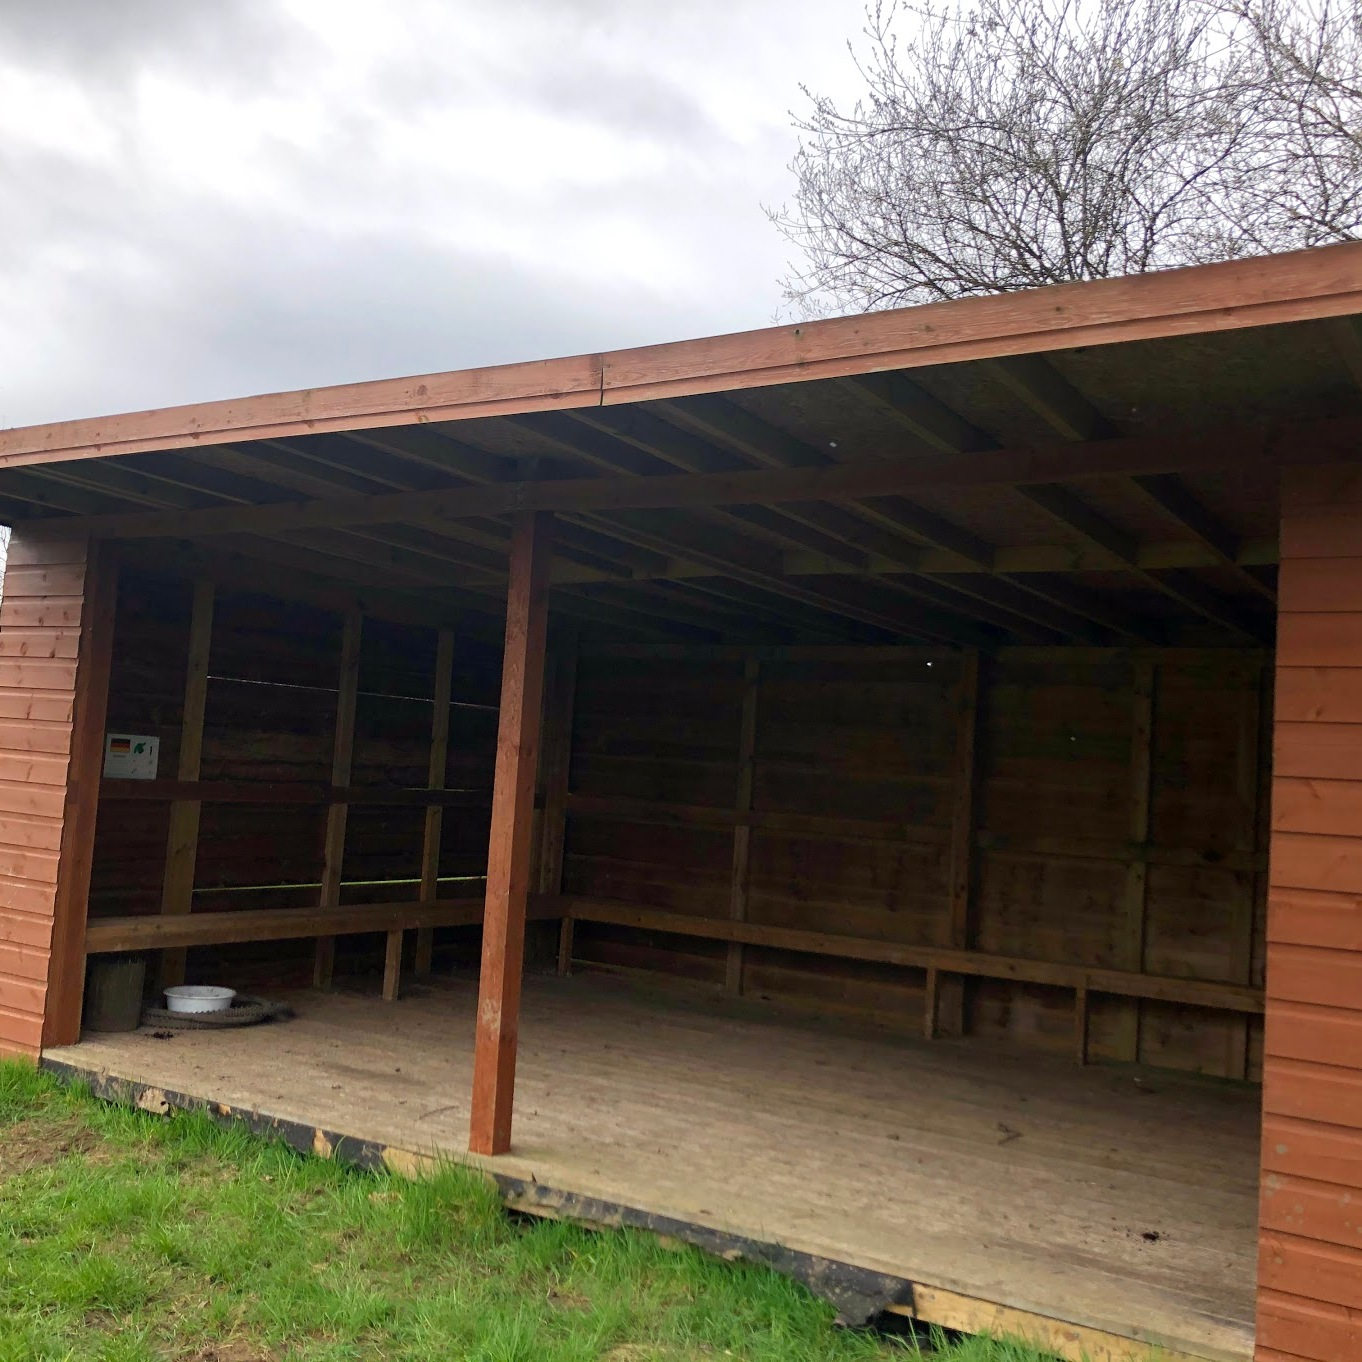 Photo of Shelter at Somermead, Outdoor Camping and Activity Venue